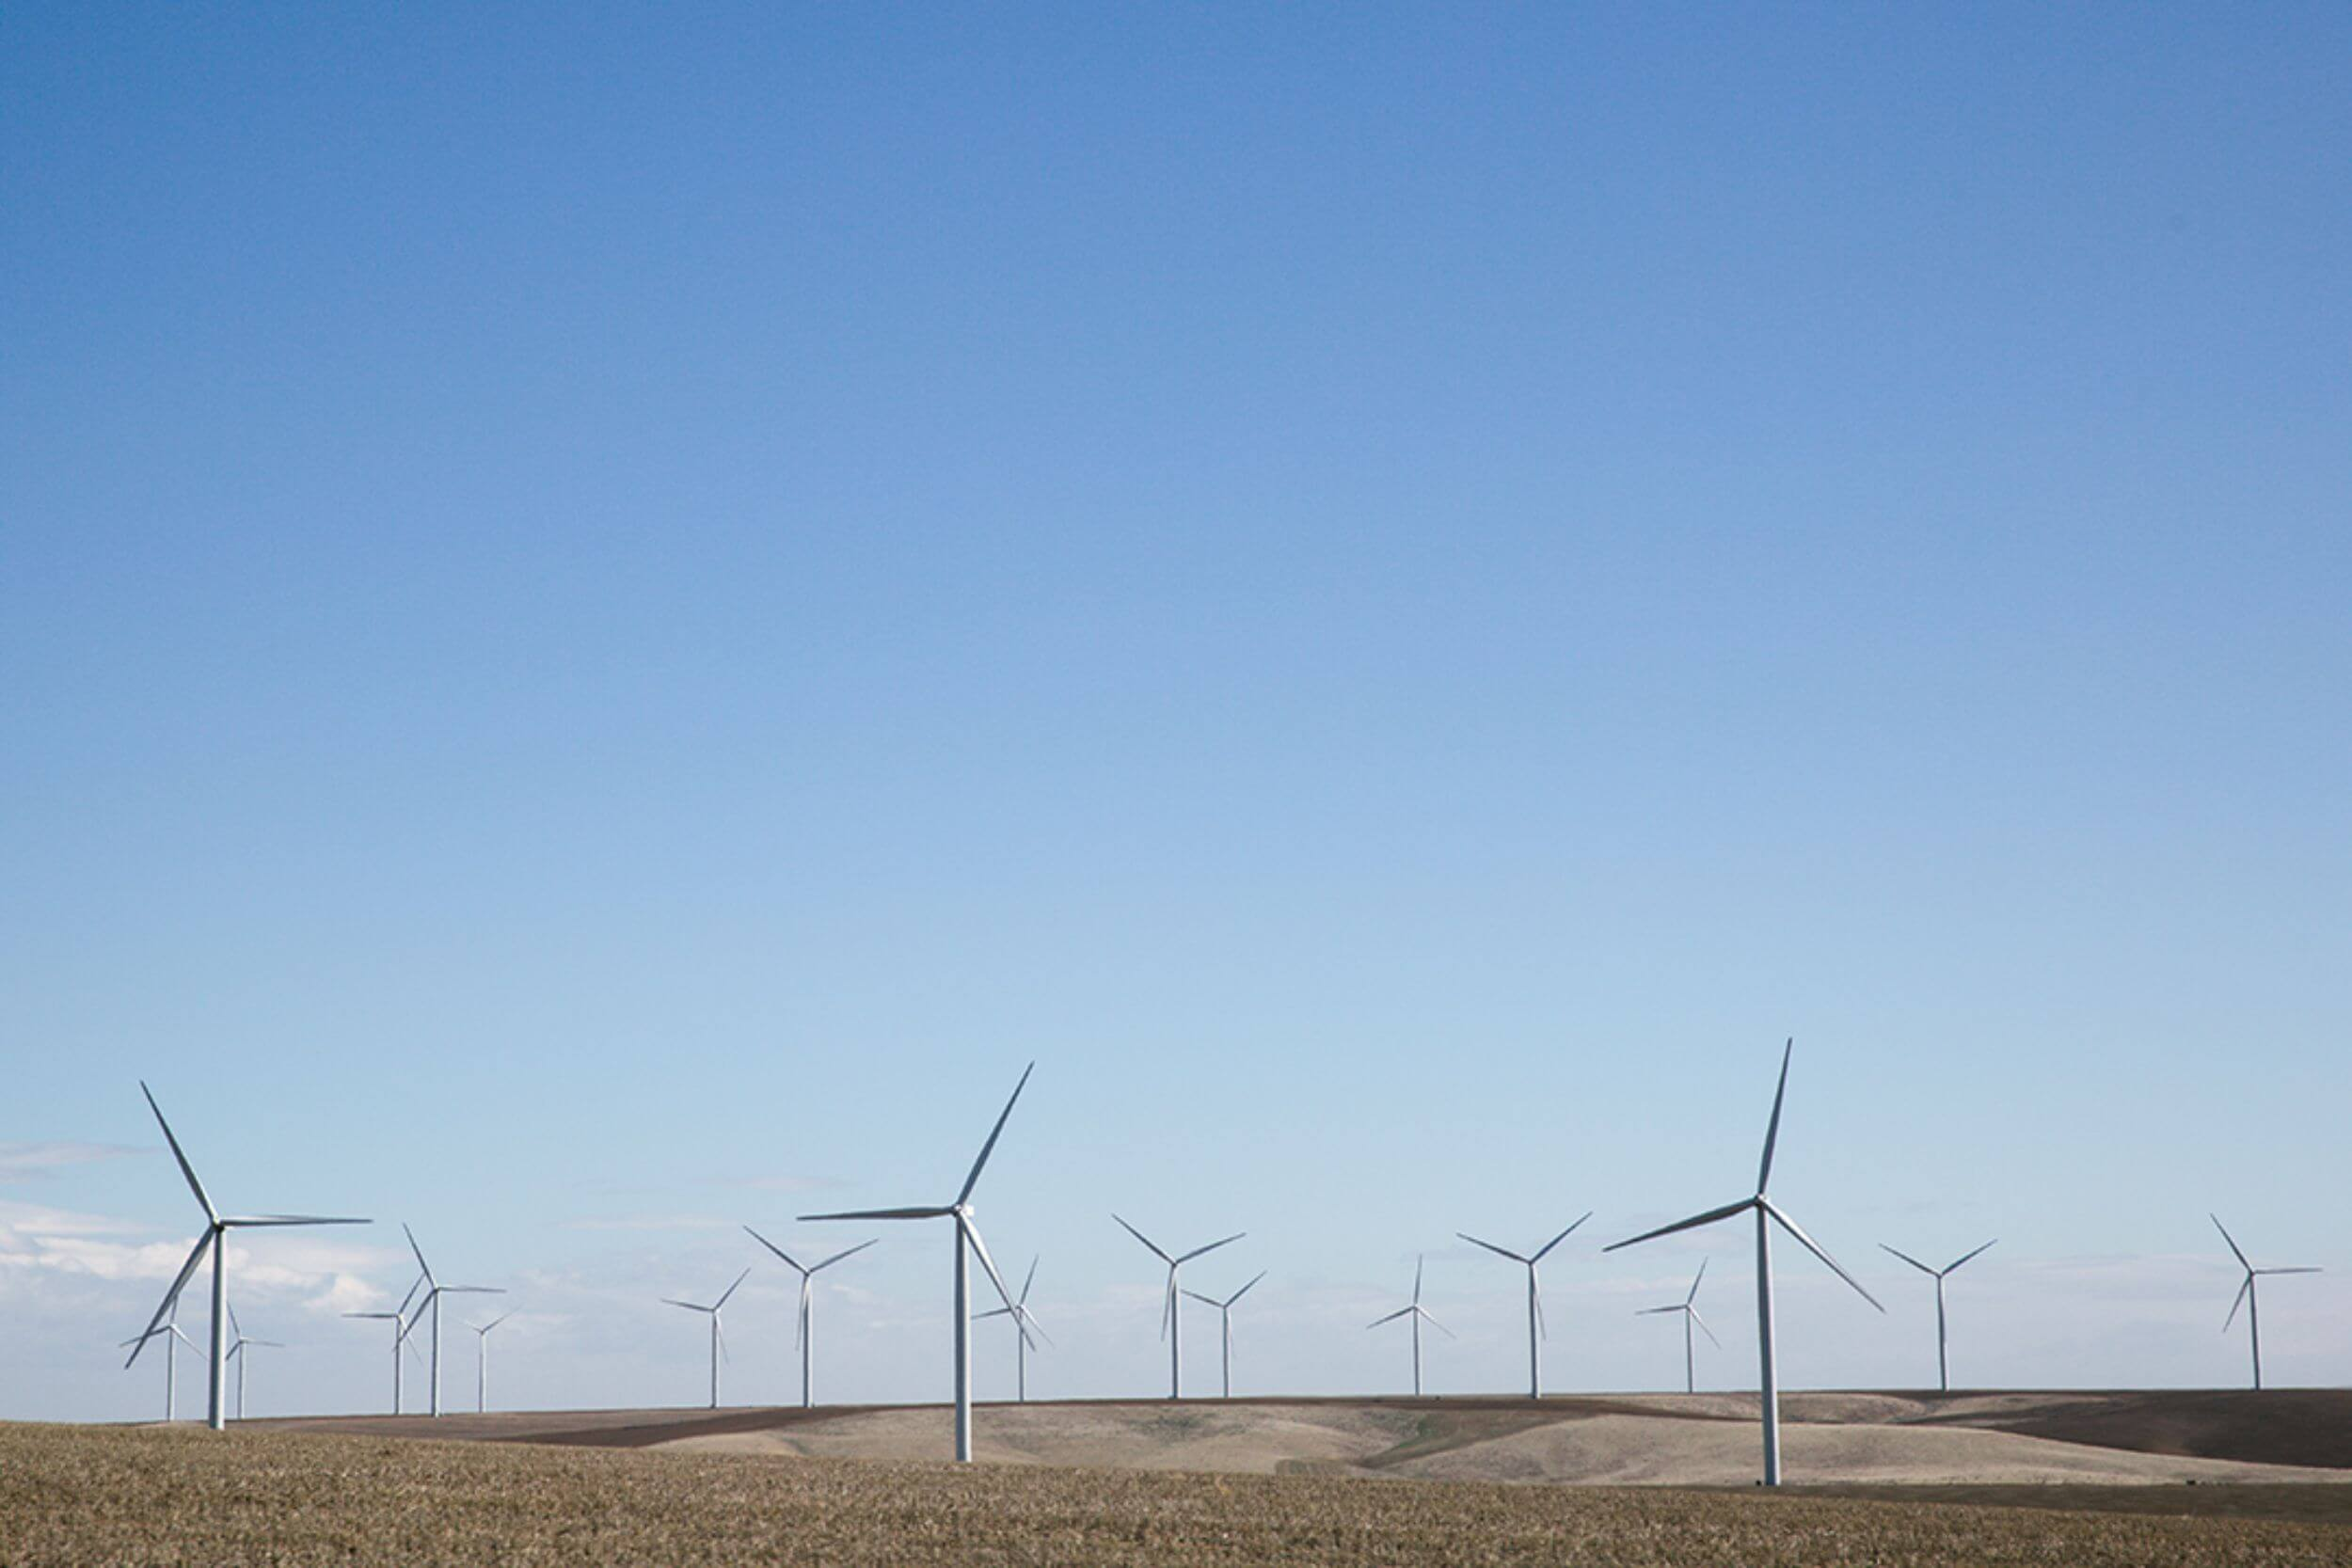 A horizon populated by large windmills, underneath a vast blue sky.